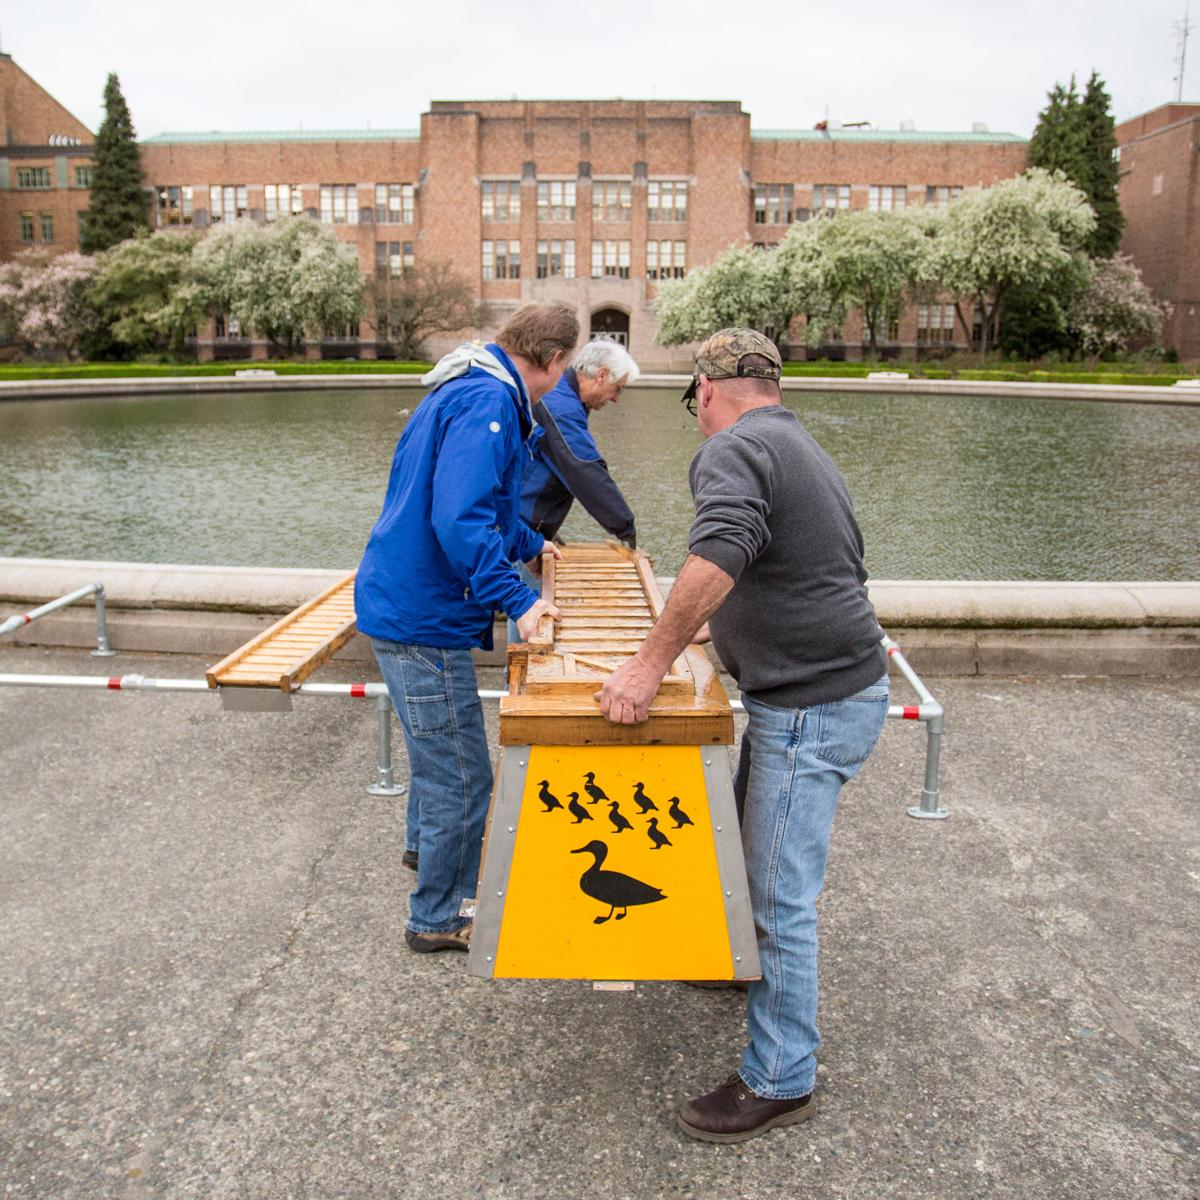 Carpenters Danny McCoy and Gordon Keough and their lead Robin Shoemake install the duckling ramp